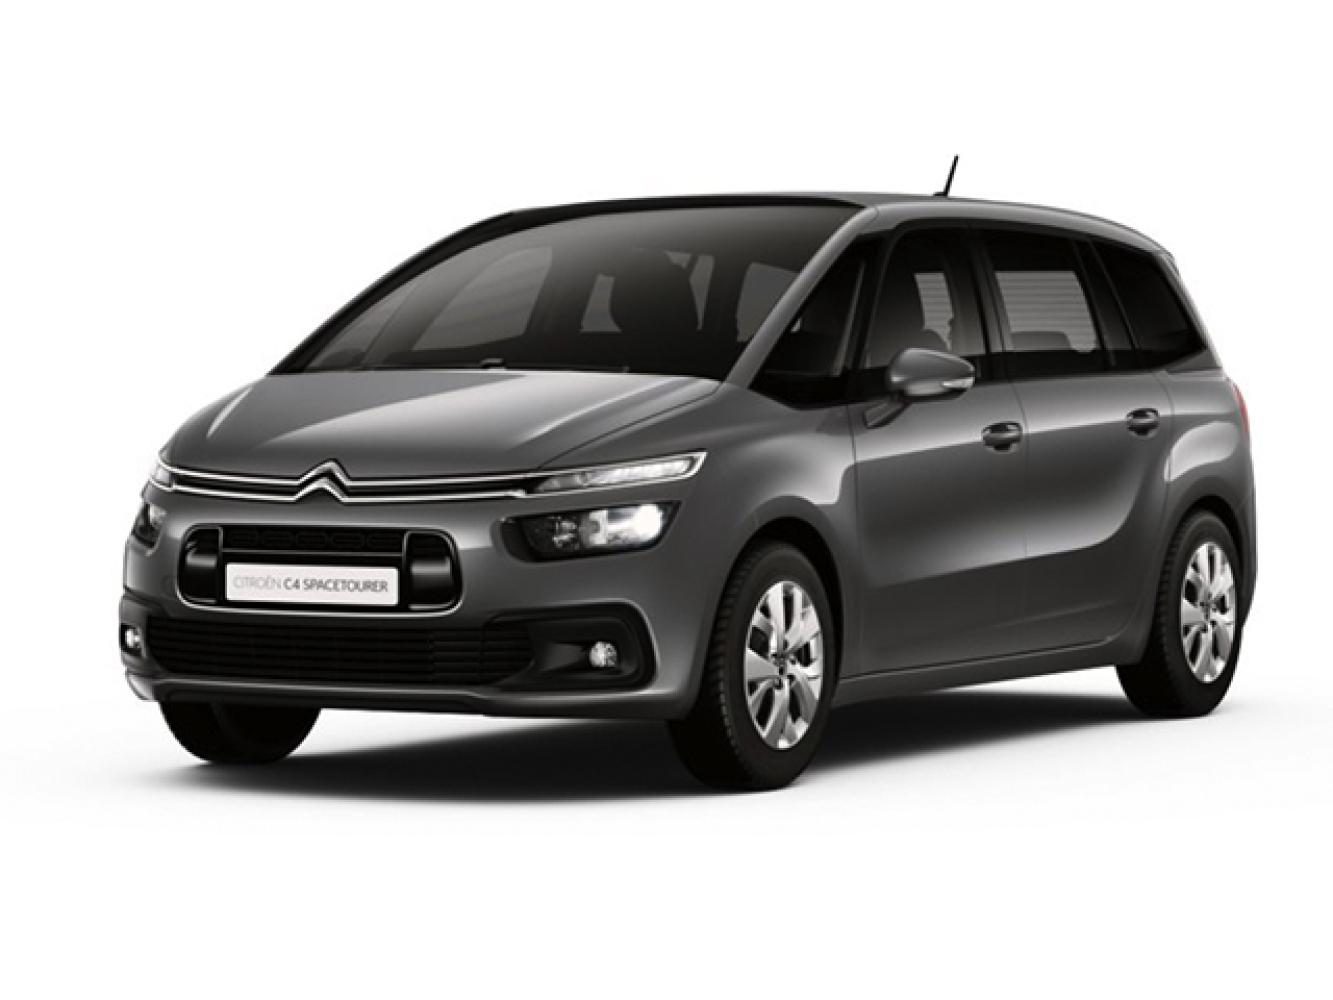 new citroen grand c4 1 5 bluehdi 130 touch edition 5dr diesel estate motability vehicle for sale. Black Bedroom Furniture Sets. Home Design Ideas